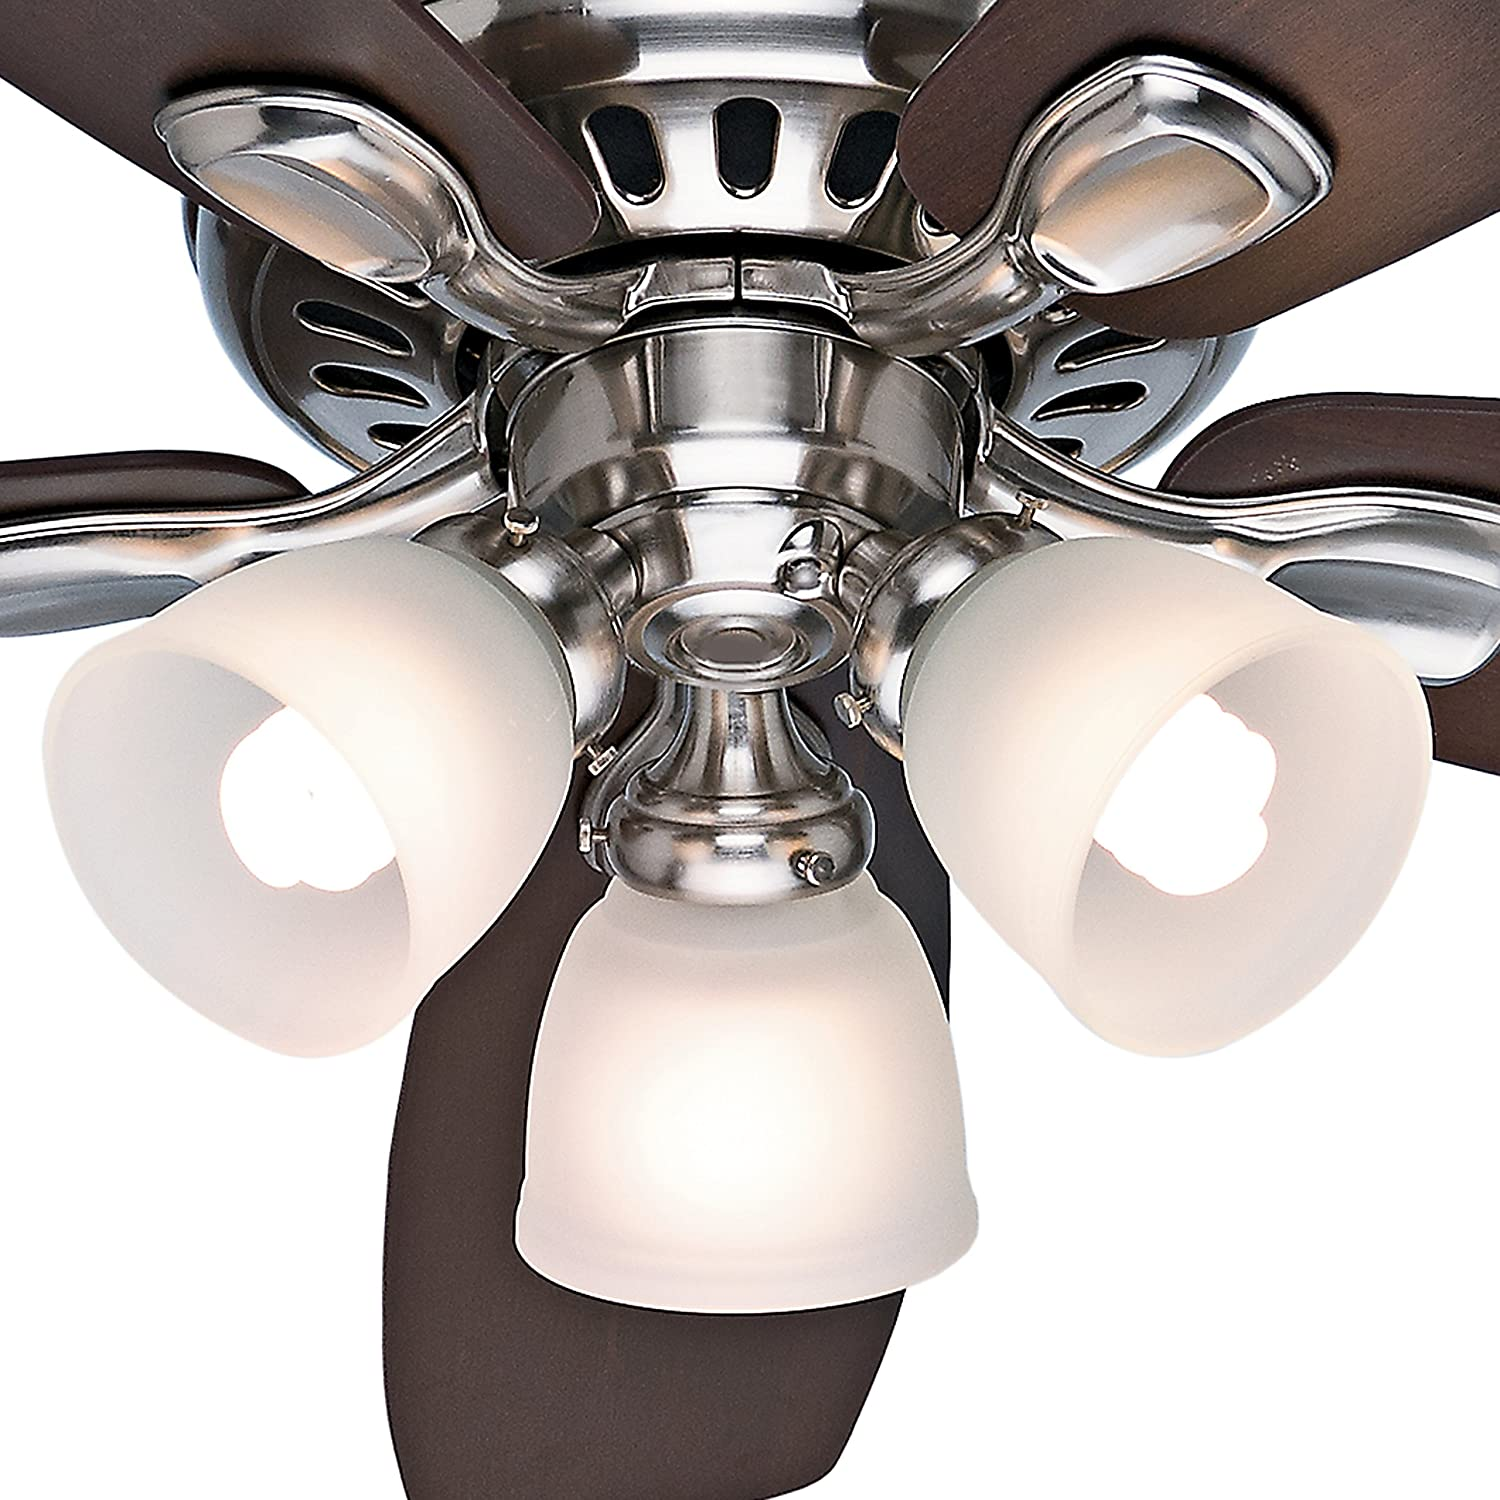 Hunter fan 52 brushed nickel ceiling fan with light kit and remote hunter fan 52 brushed nickel ceiling fan with light kit and remote control 5 blade certified refurbished amazon audiocablefo